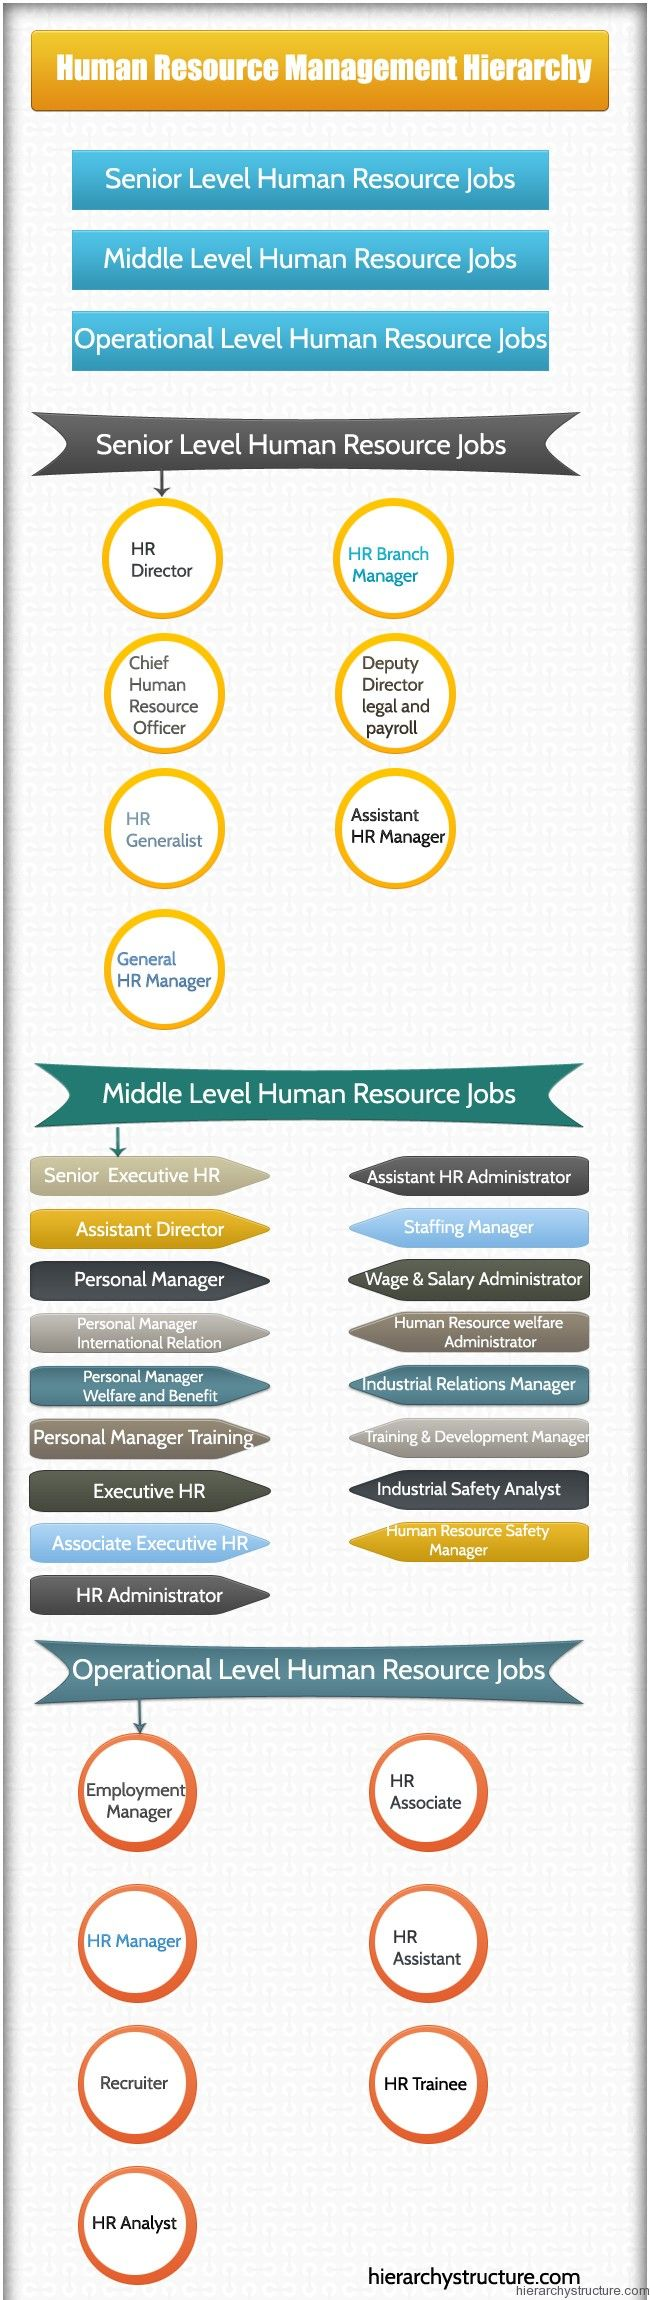 best images about career pathways and exploration resources on human resource management hierarchy from hierarchystructure com